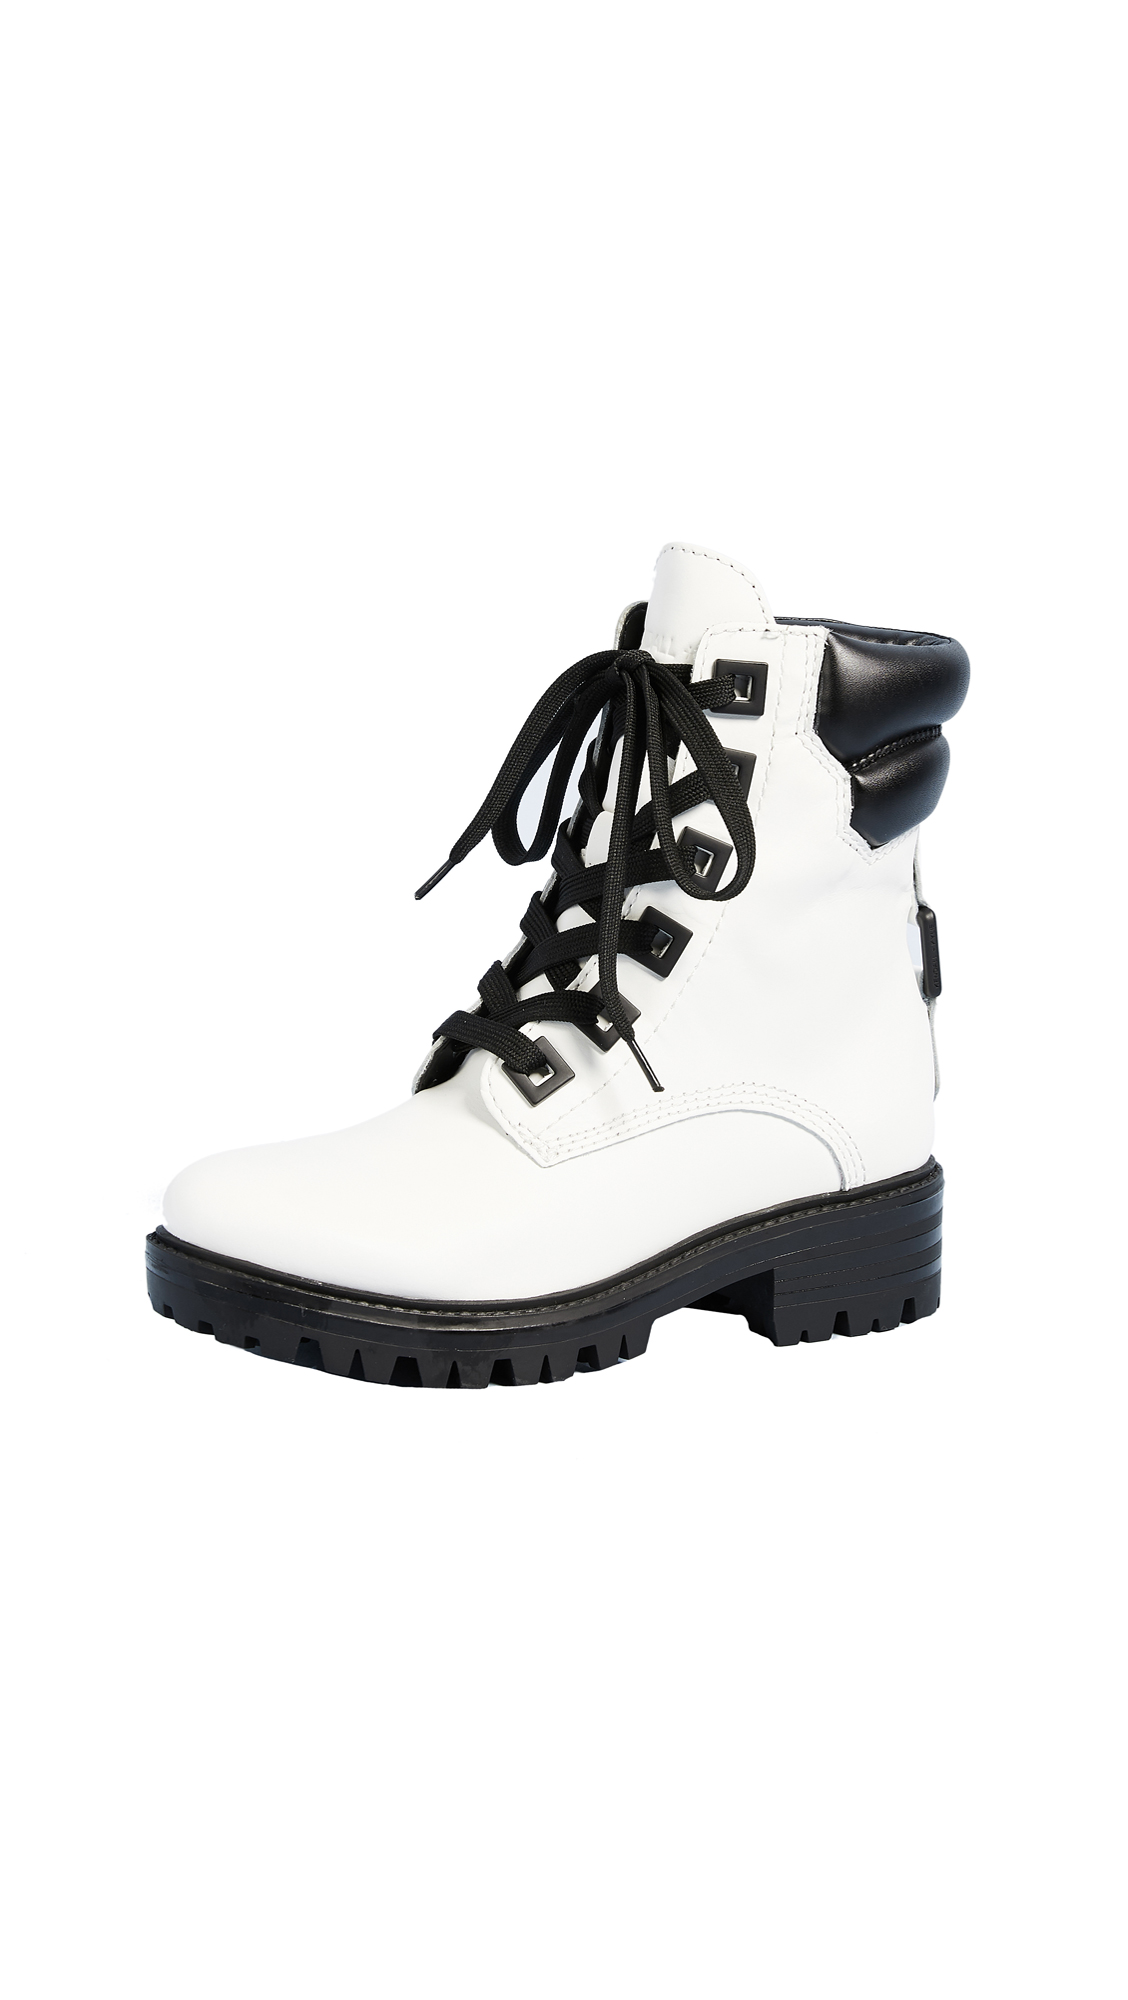 KENDALL + KYLIE East Hiker Boots - White